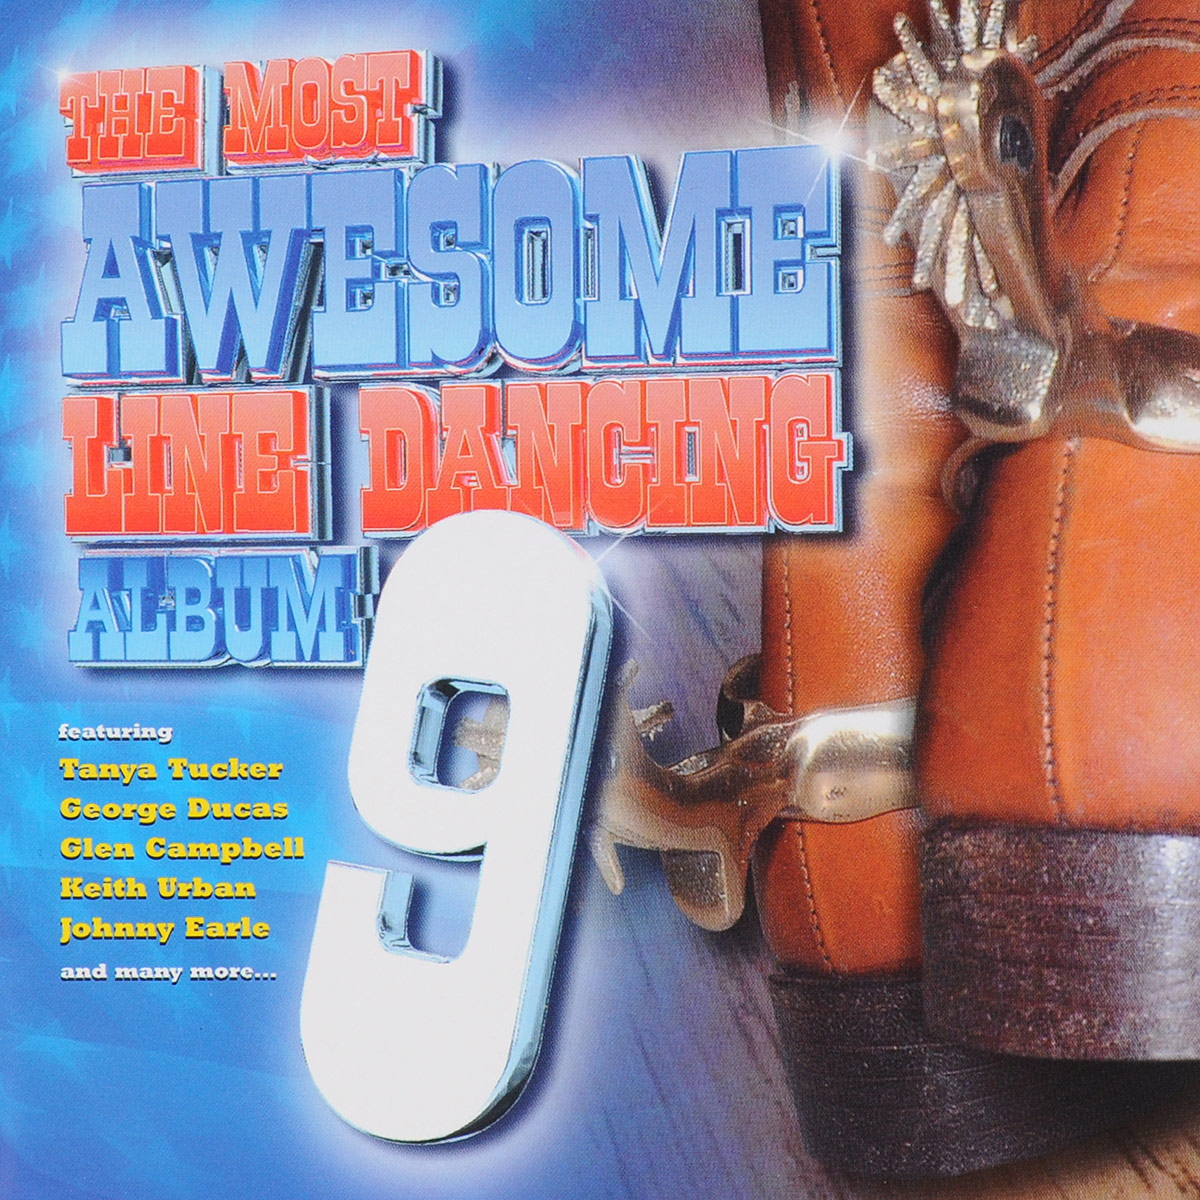 VARIOUS ARTISTS. THE MOST AWESOME LINE DANCE ALBUM 9